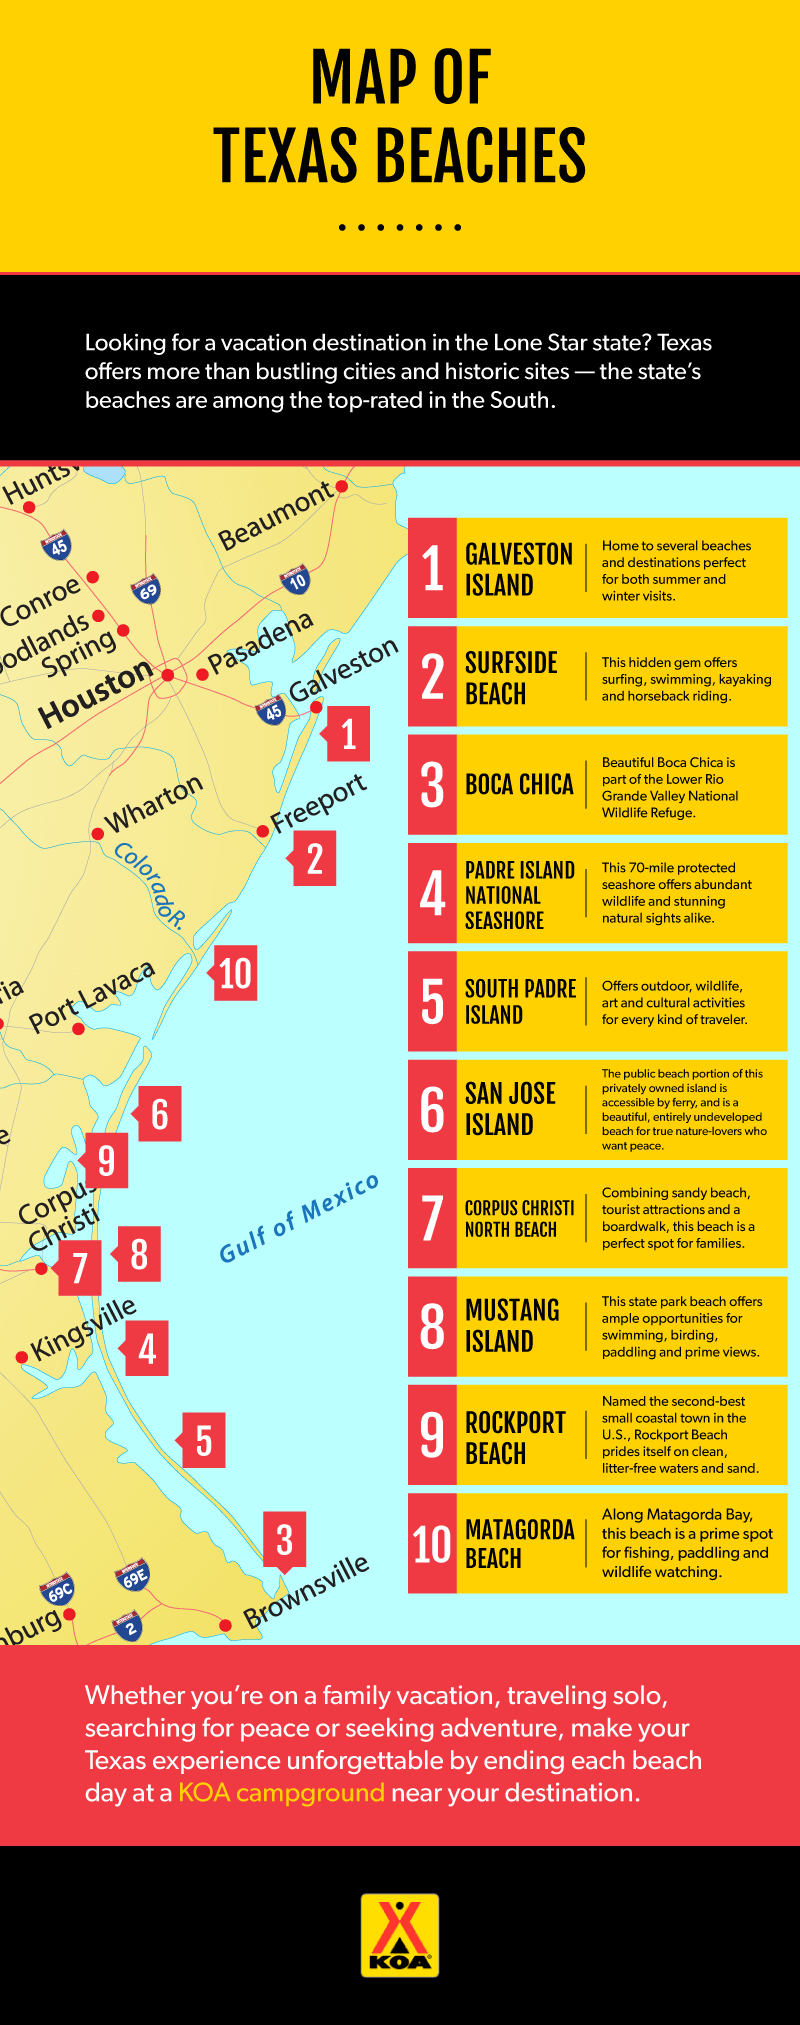 Map Of Texas Beach 10 Best Beaches in Texas for Families, When to Visit & More | KOA